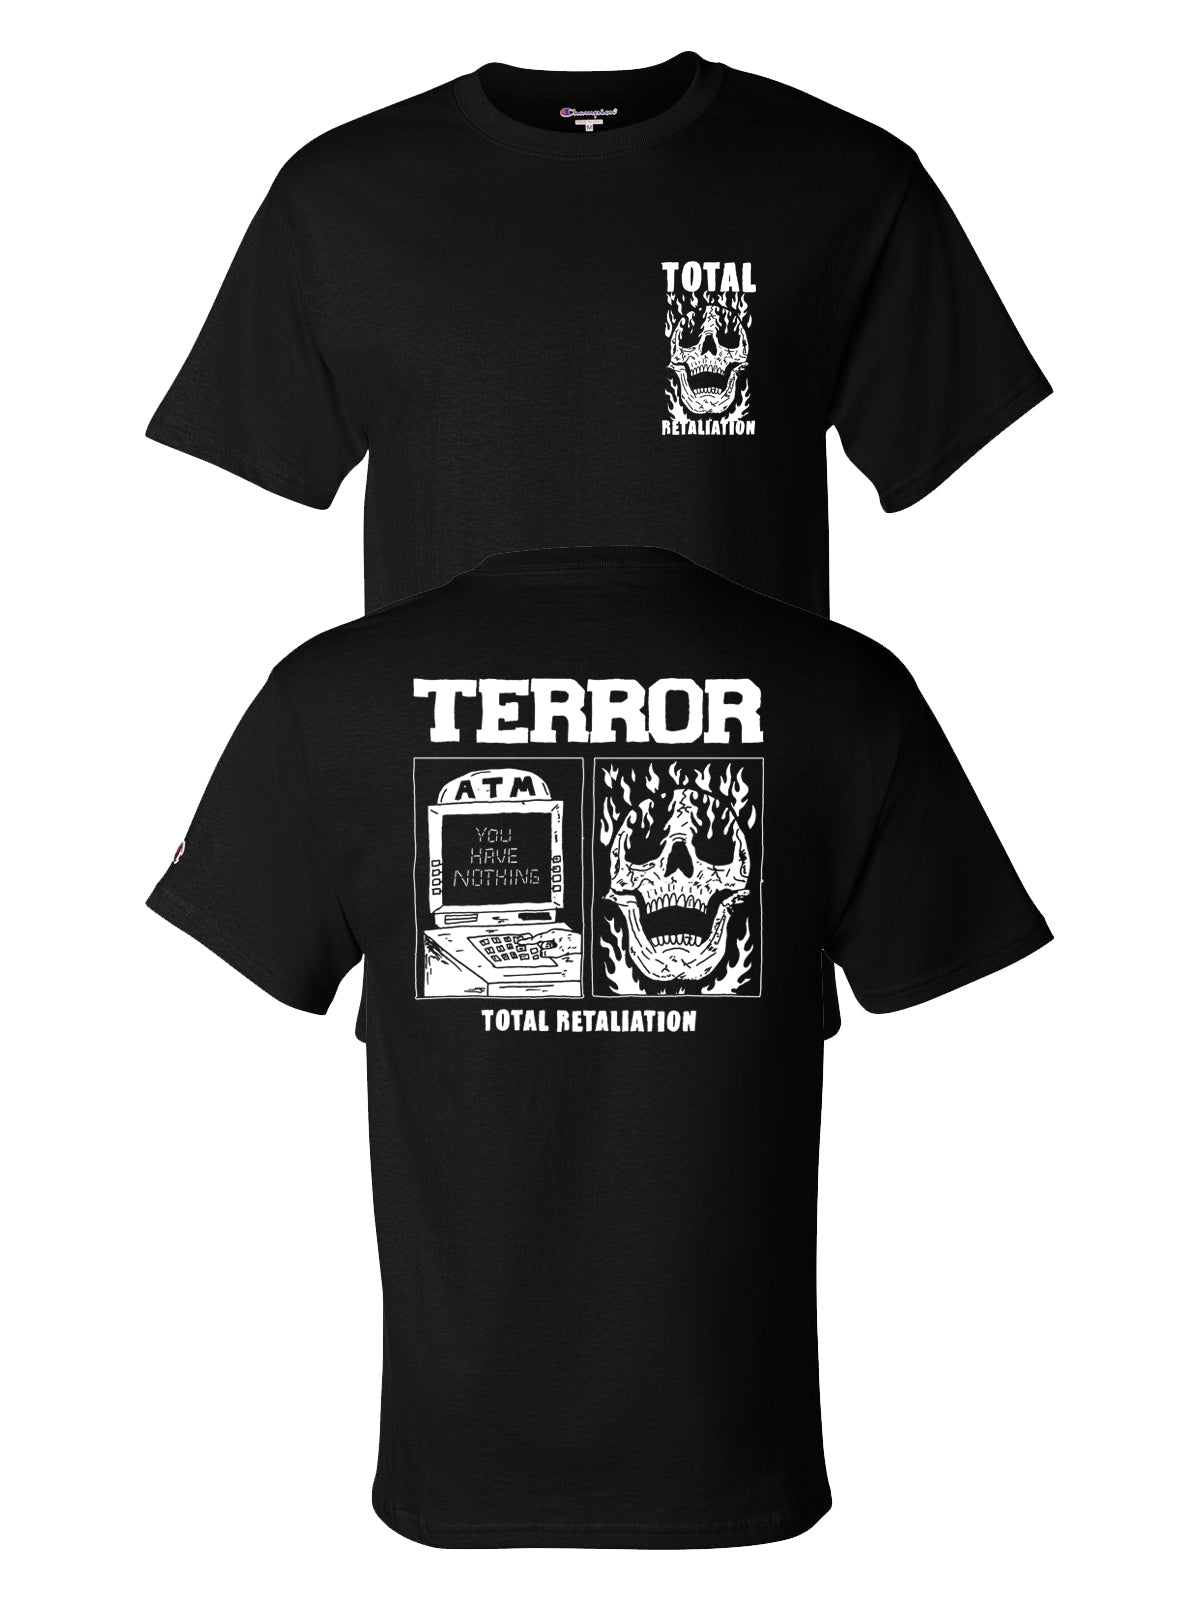 Terror - You Have Nothing - Merch Limited